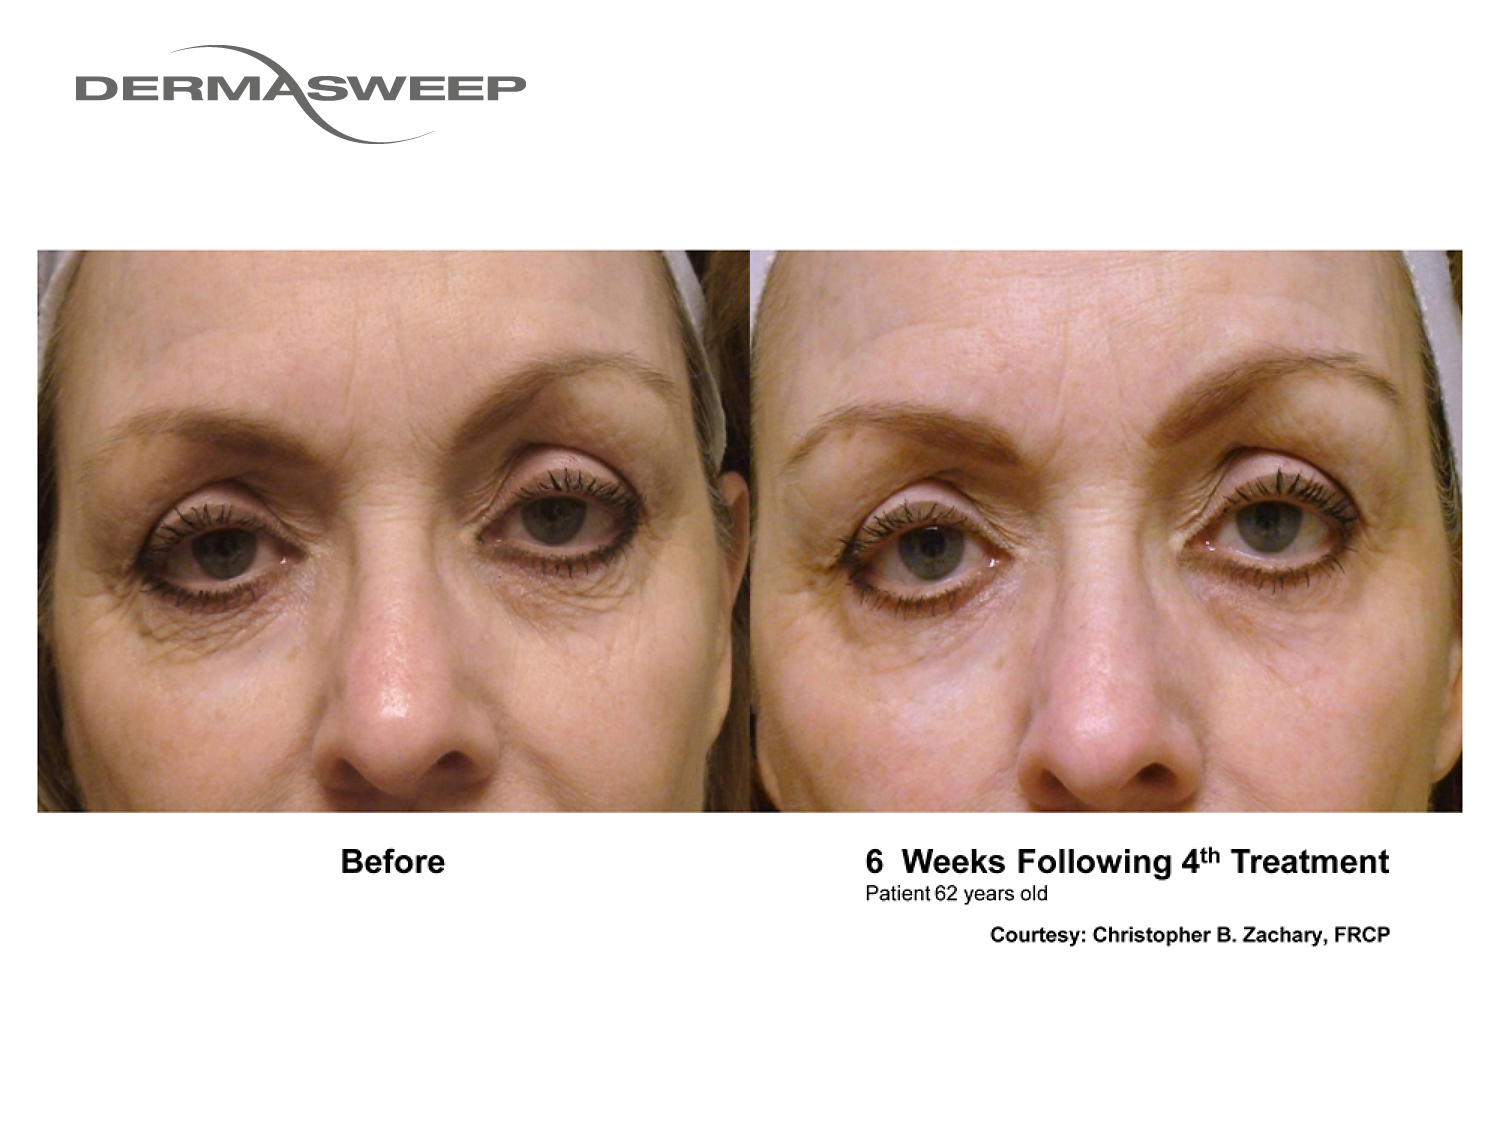 DermaSweep_Before_and_After_Images_Eye_Area_2.jpg